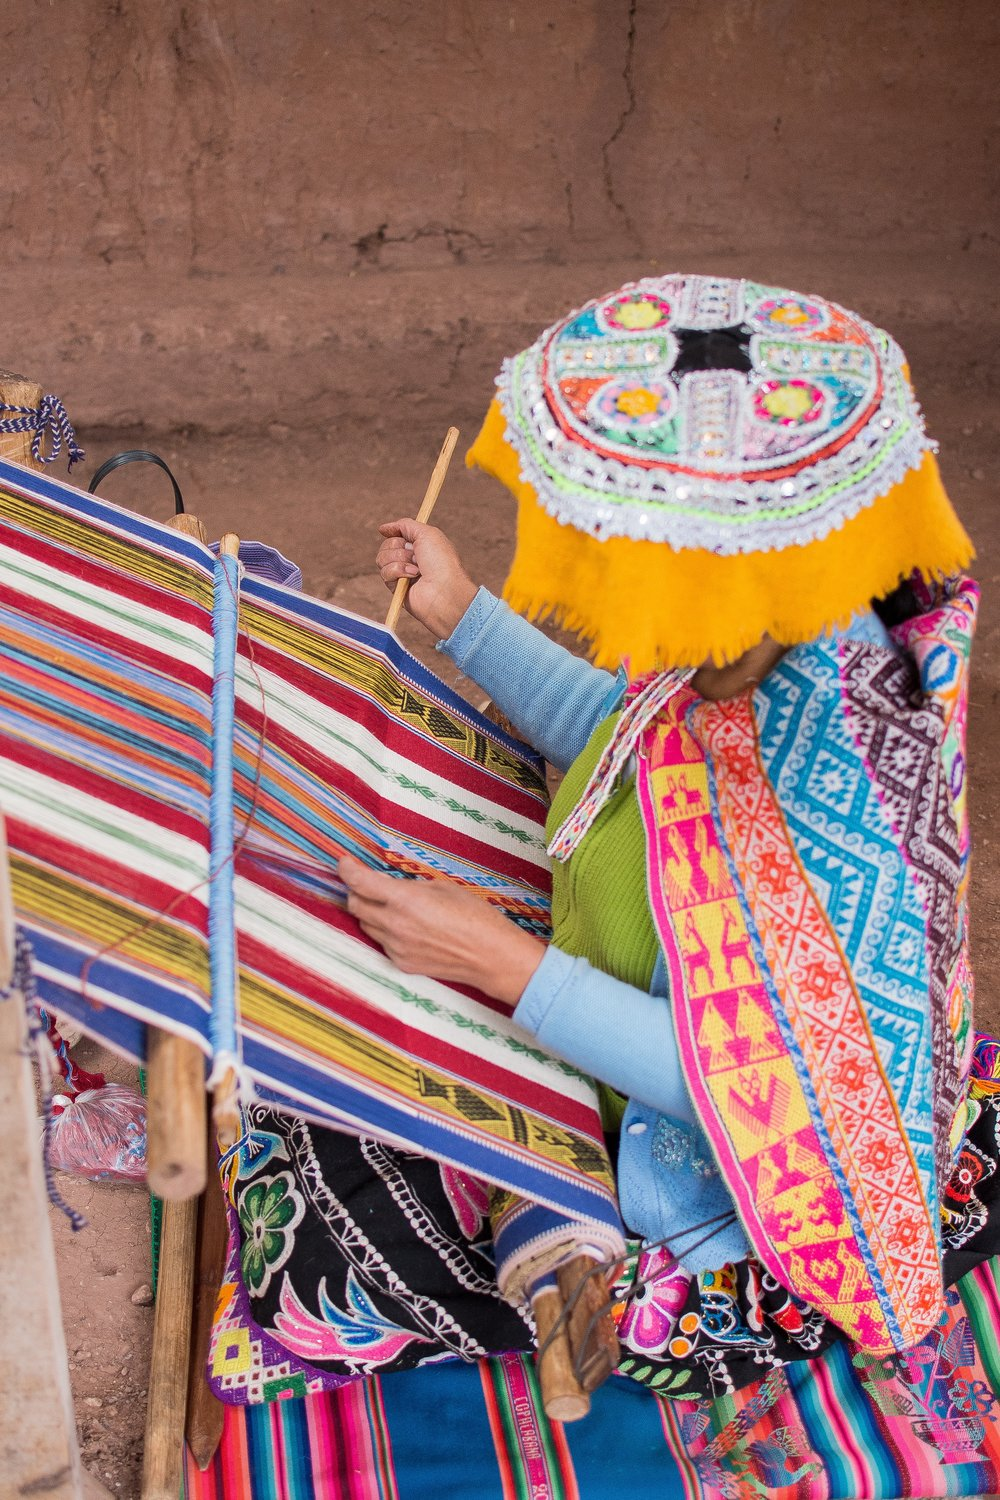 Peruvian woman weaving at Ccochahuasi Animal Sanctuary